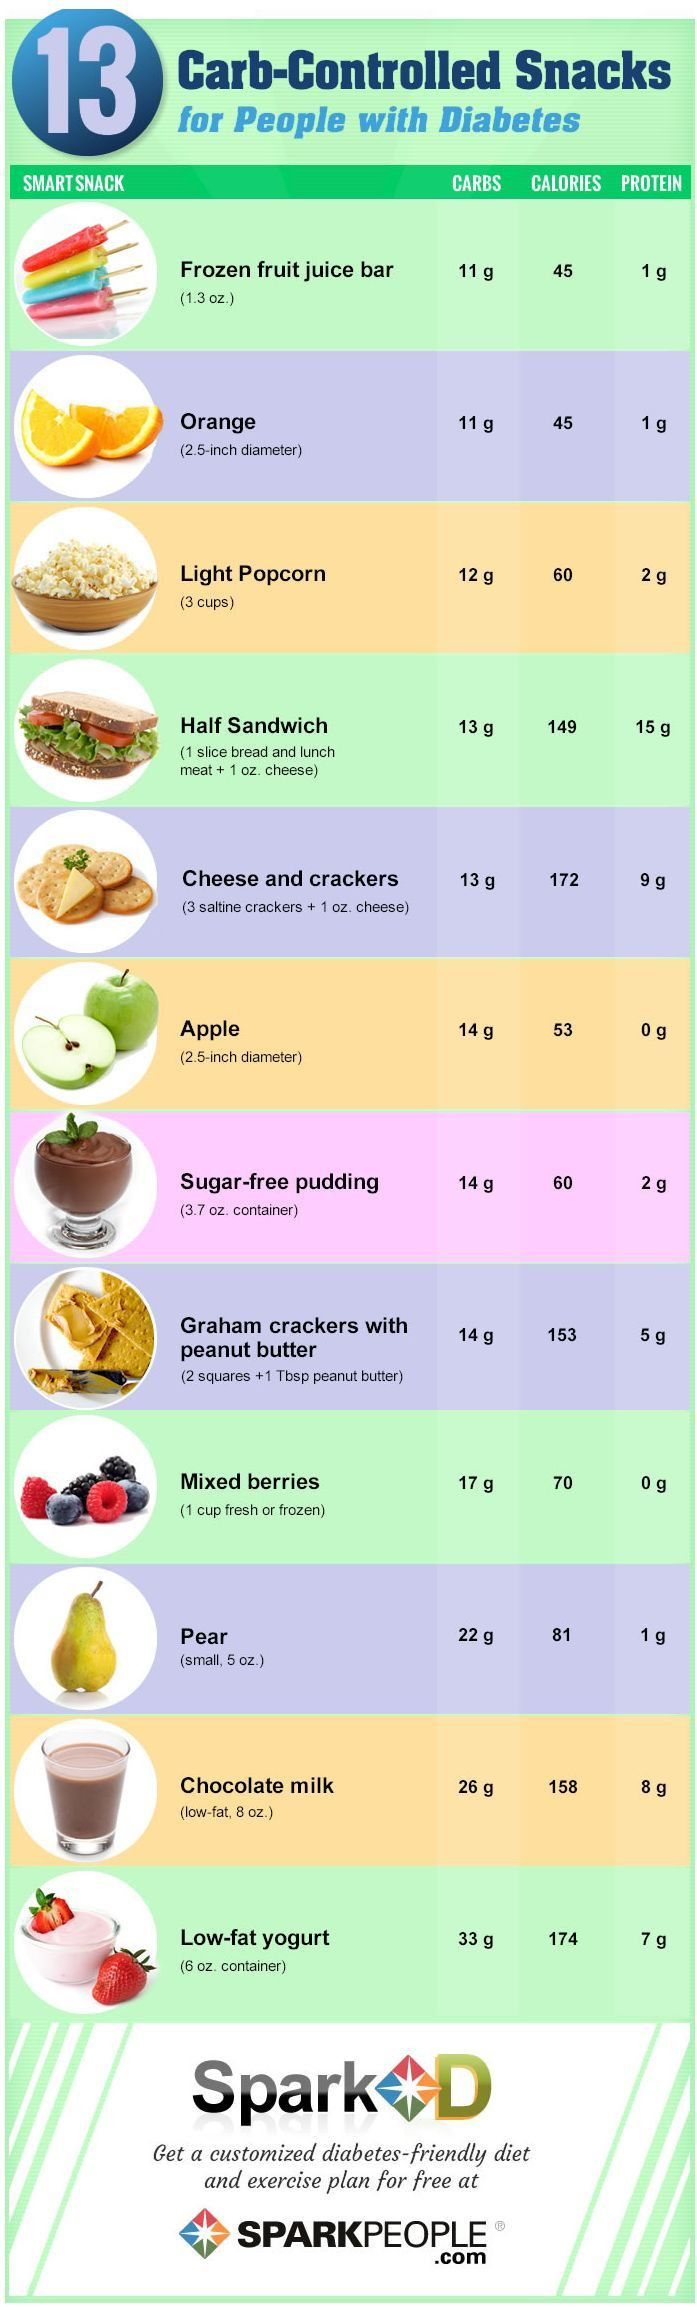 Healthy Snacks For A Diabetic  13 Carb Controlled Snacks